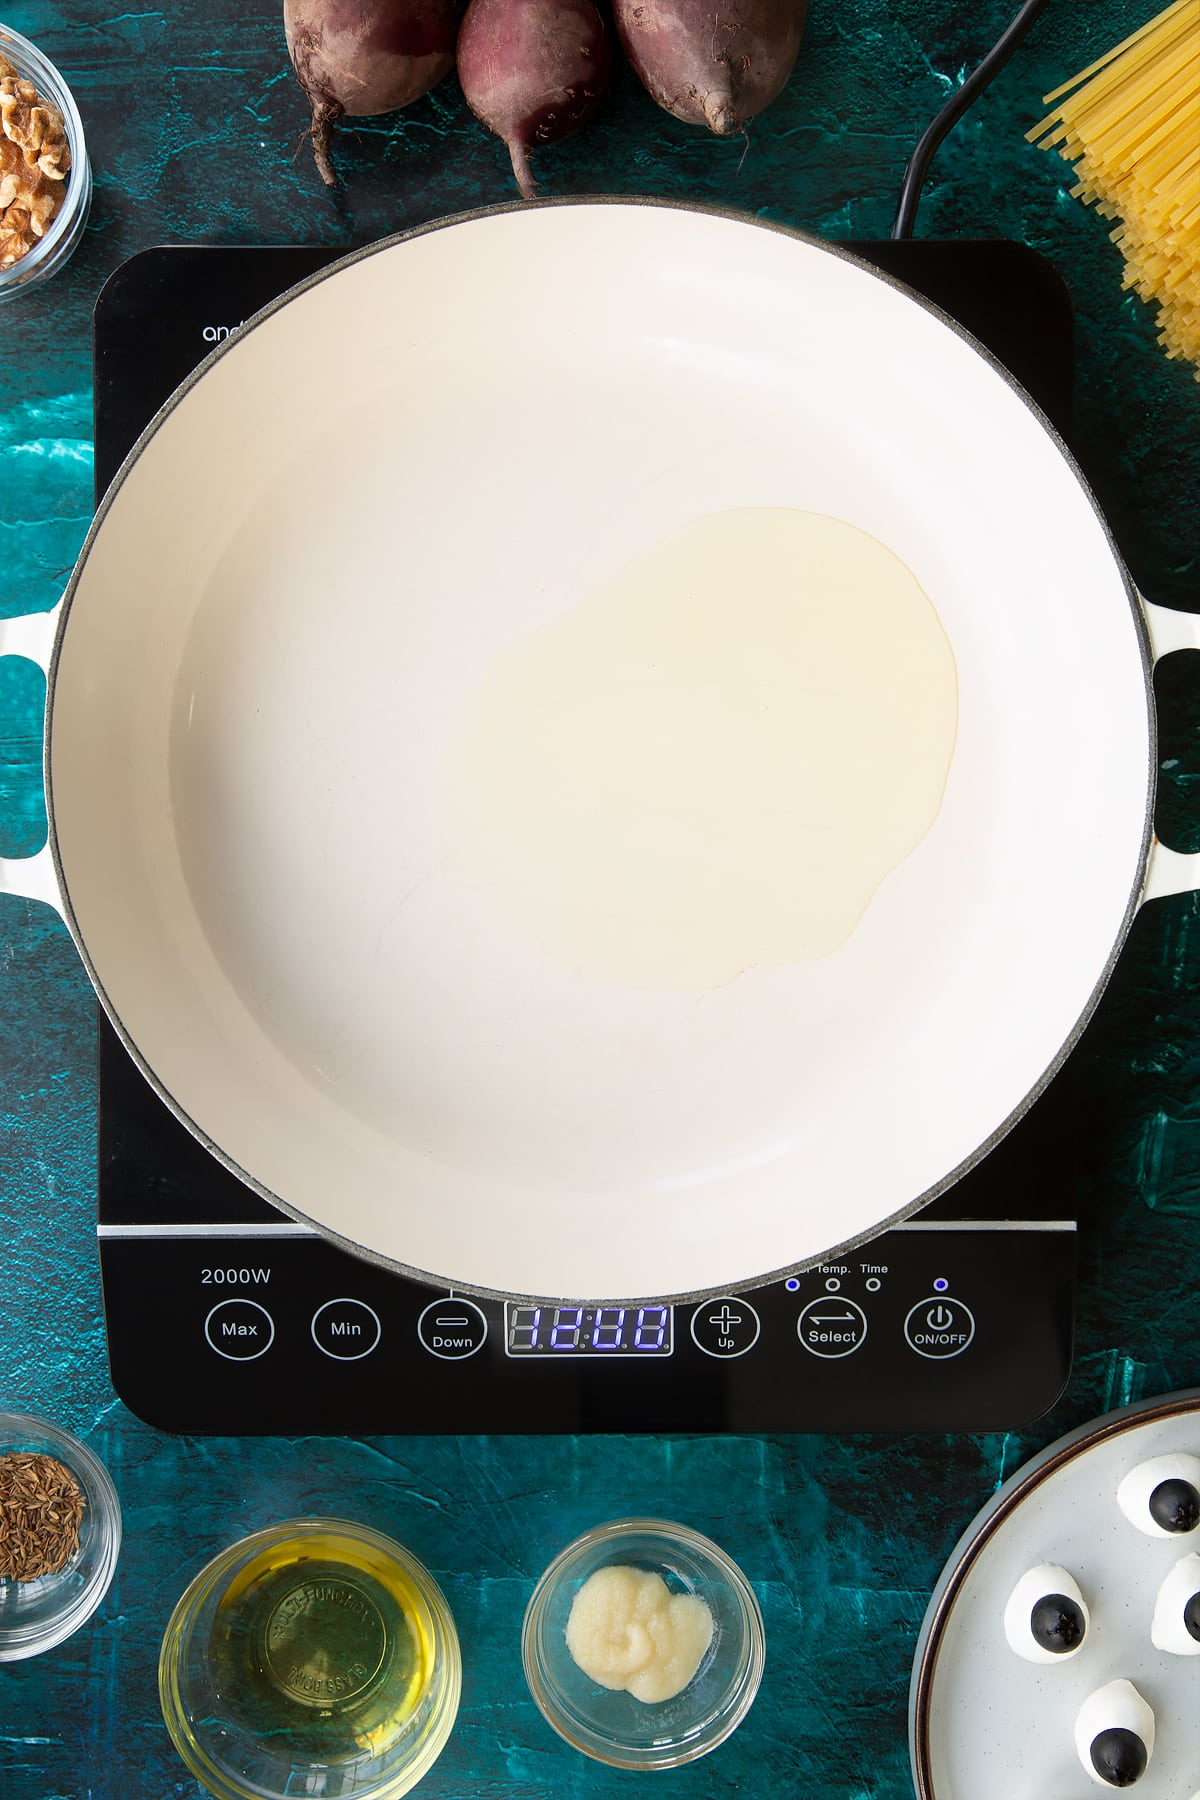 Oil in a pan. Ingredients to make a Halloween pasta recipe surround the pan.